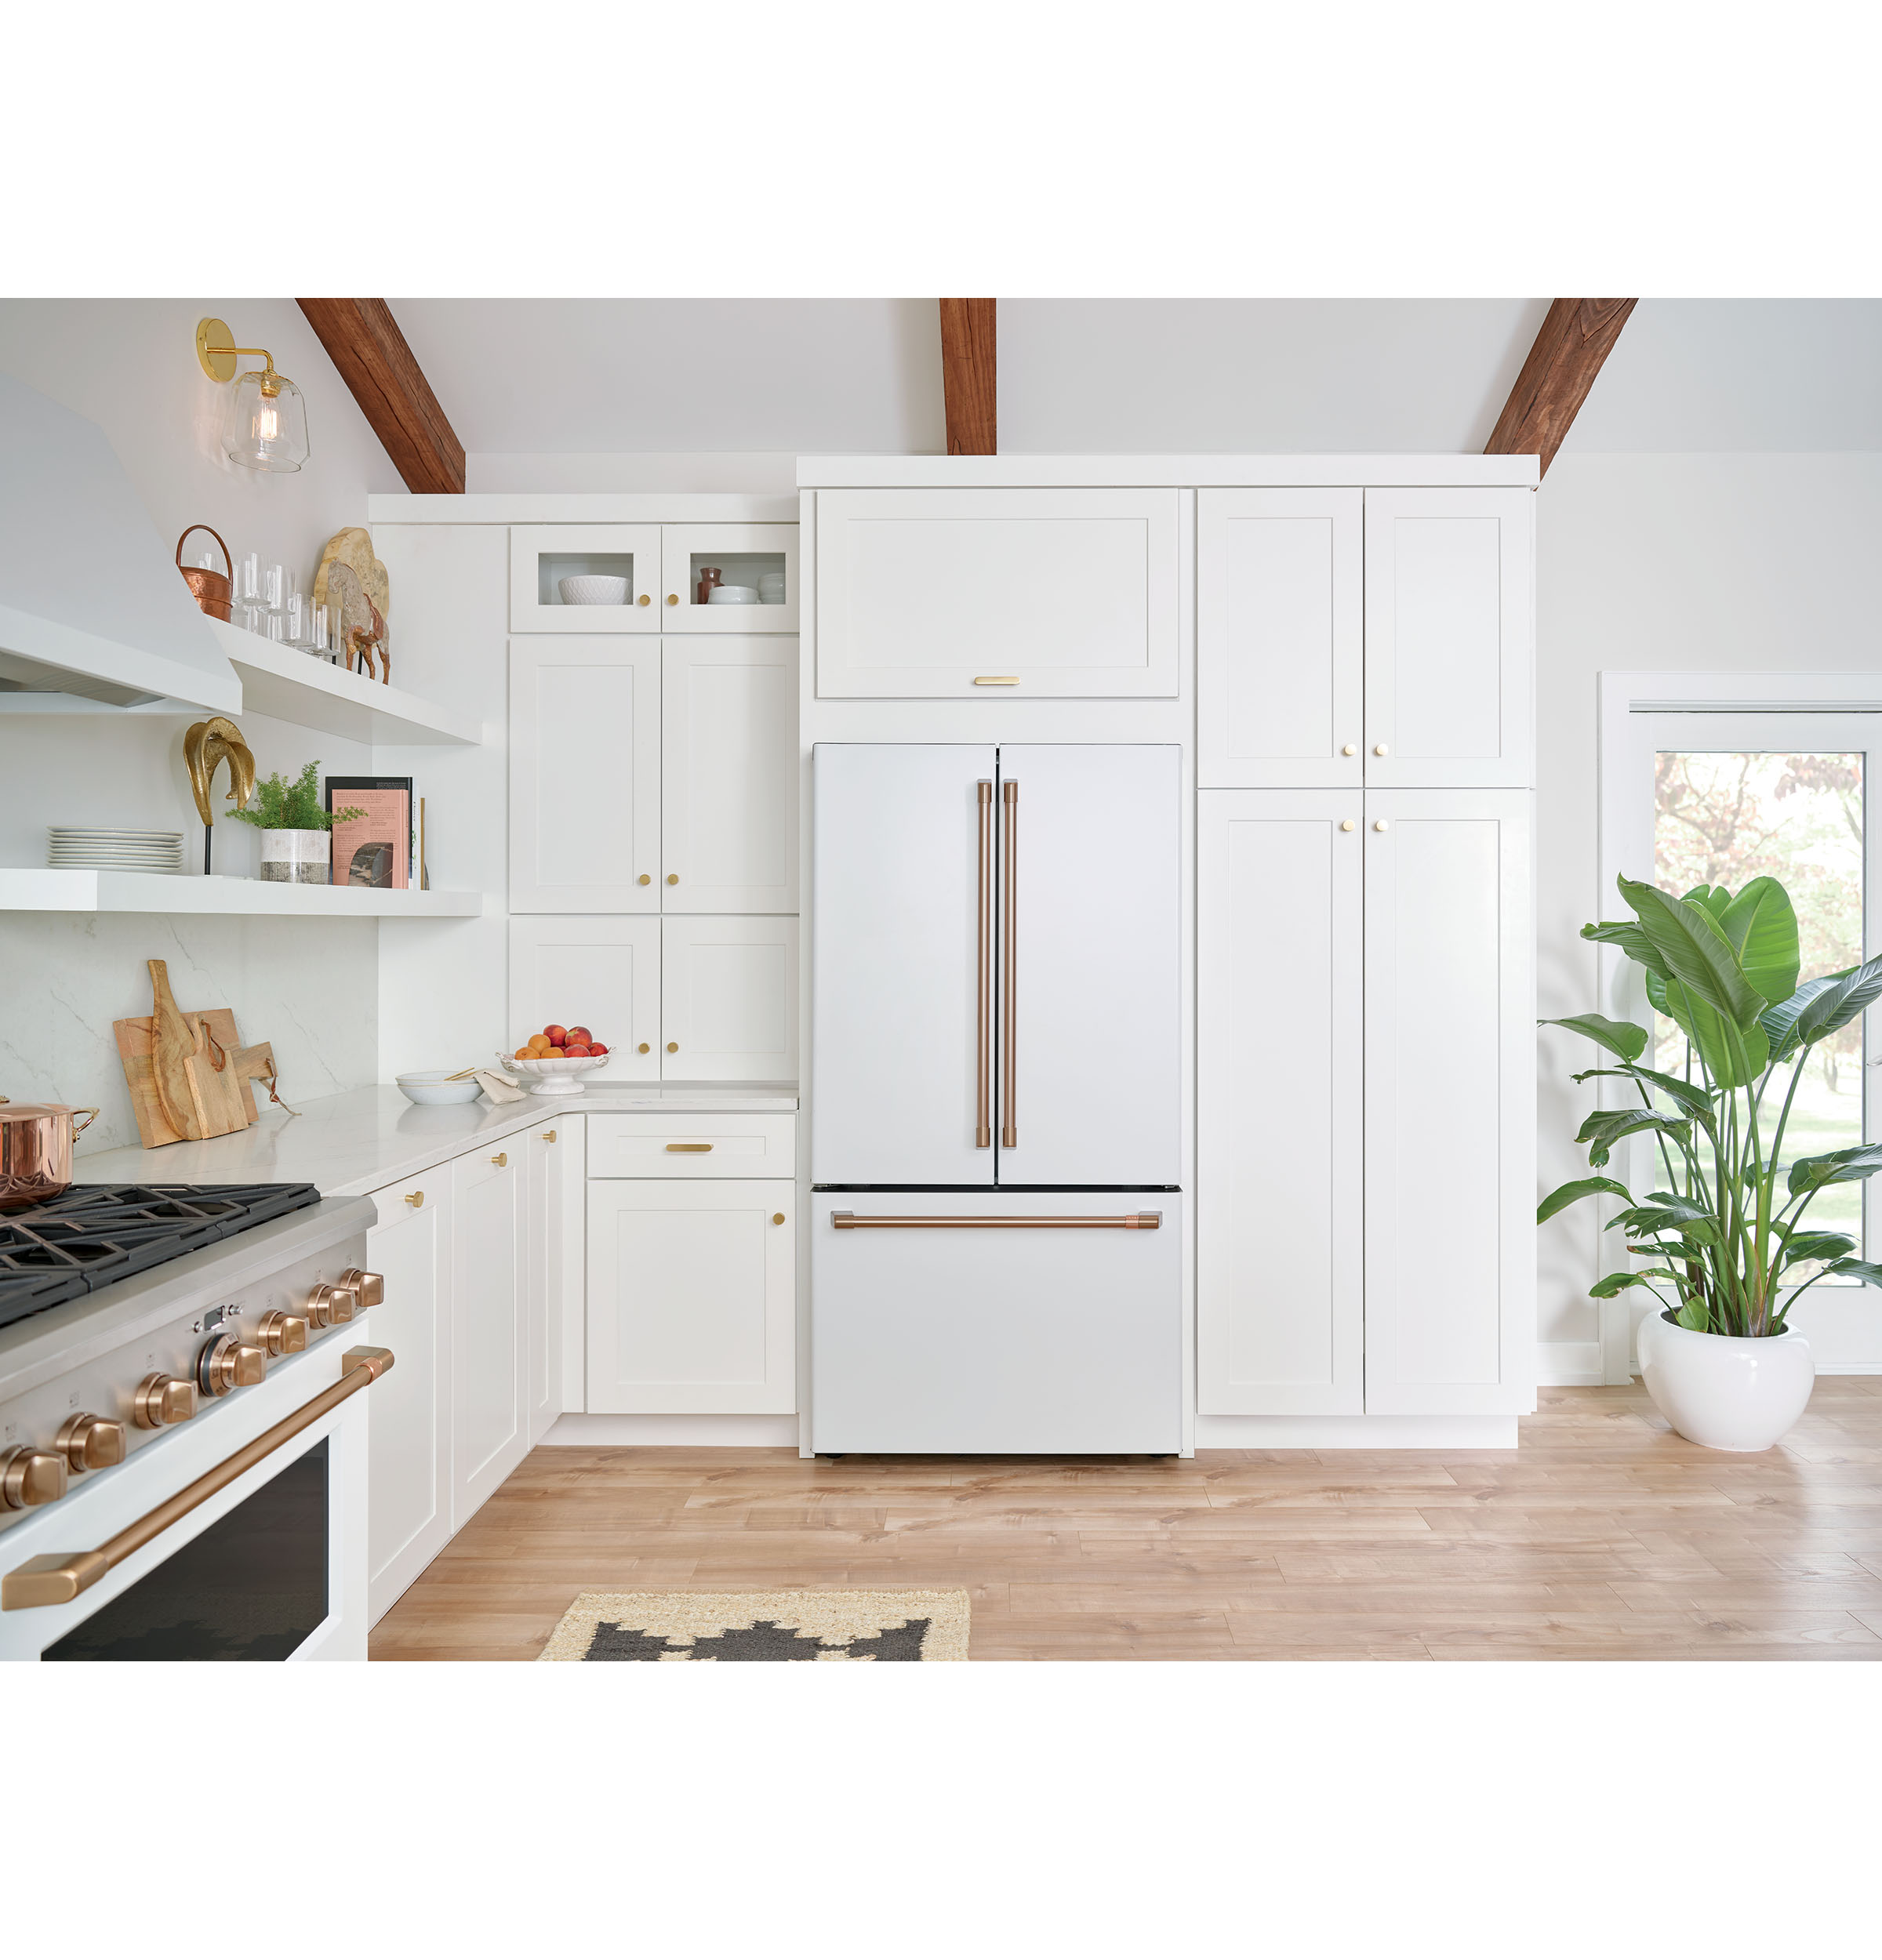 Model: CWE23SP4MW2 | Café™ ENERGY STAR® 23.1 Cu. Ft. Counter-Depth French-Door Refrigerator